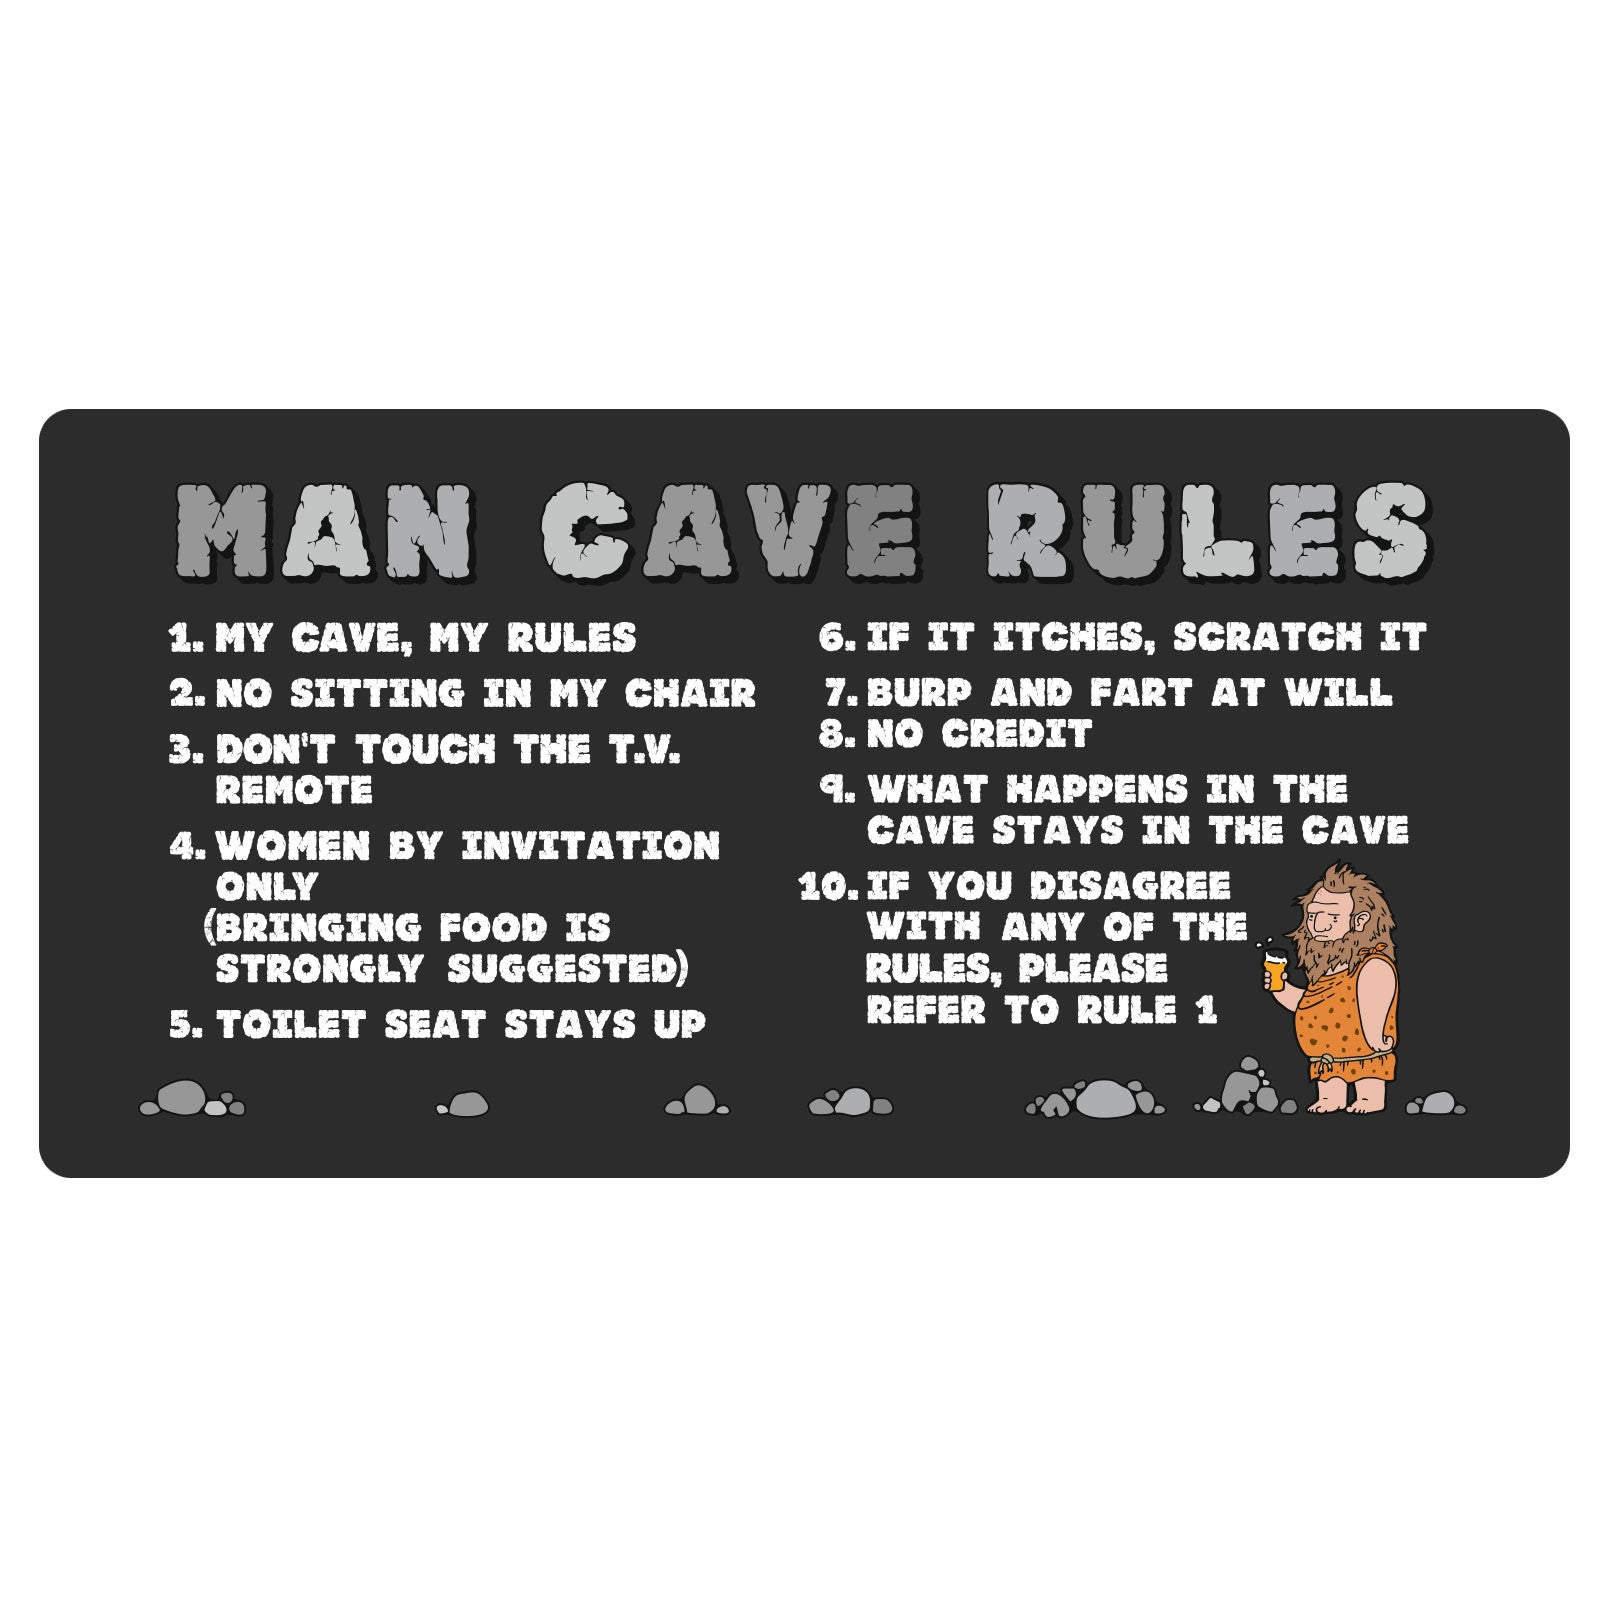 Buy 123t Man Cave Rules Personalised Funny Custom Bar Runner at 123t  T-Shirts & Hoodies for only £11 99